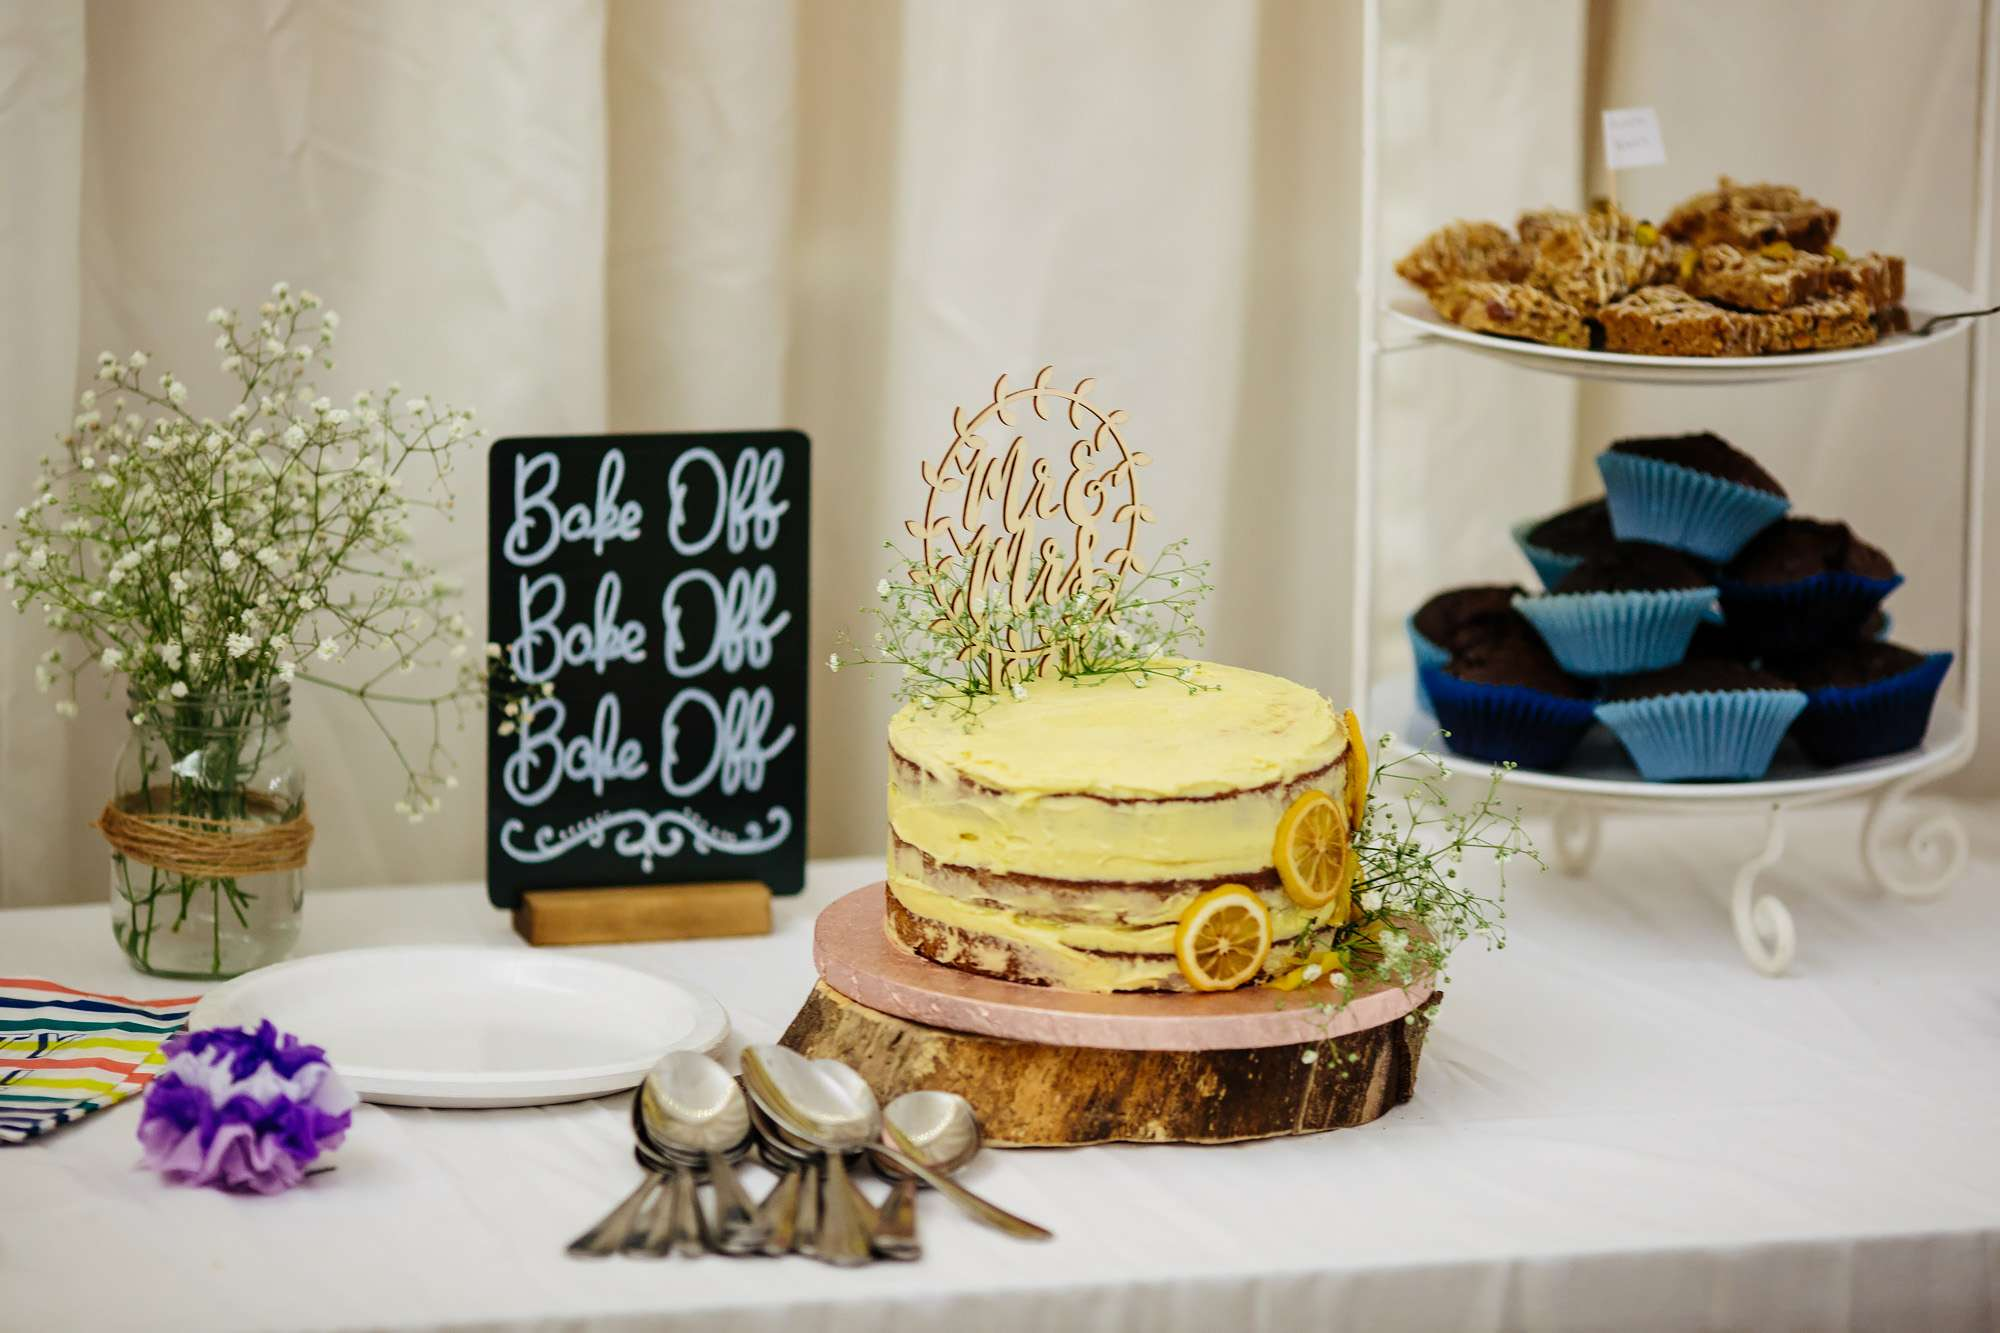 Bake off themed Leeds wedding with lots of cake